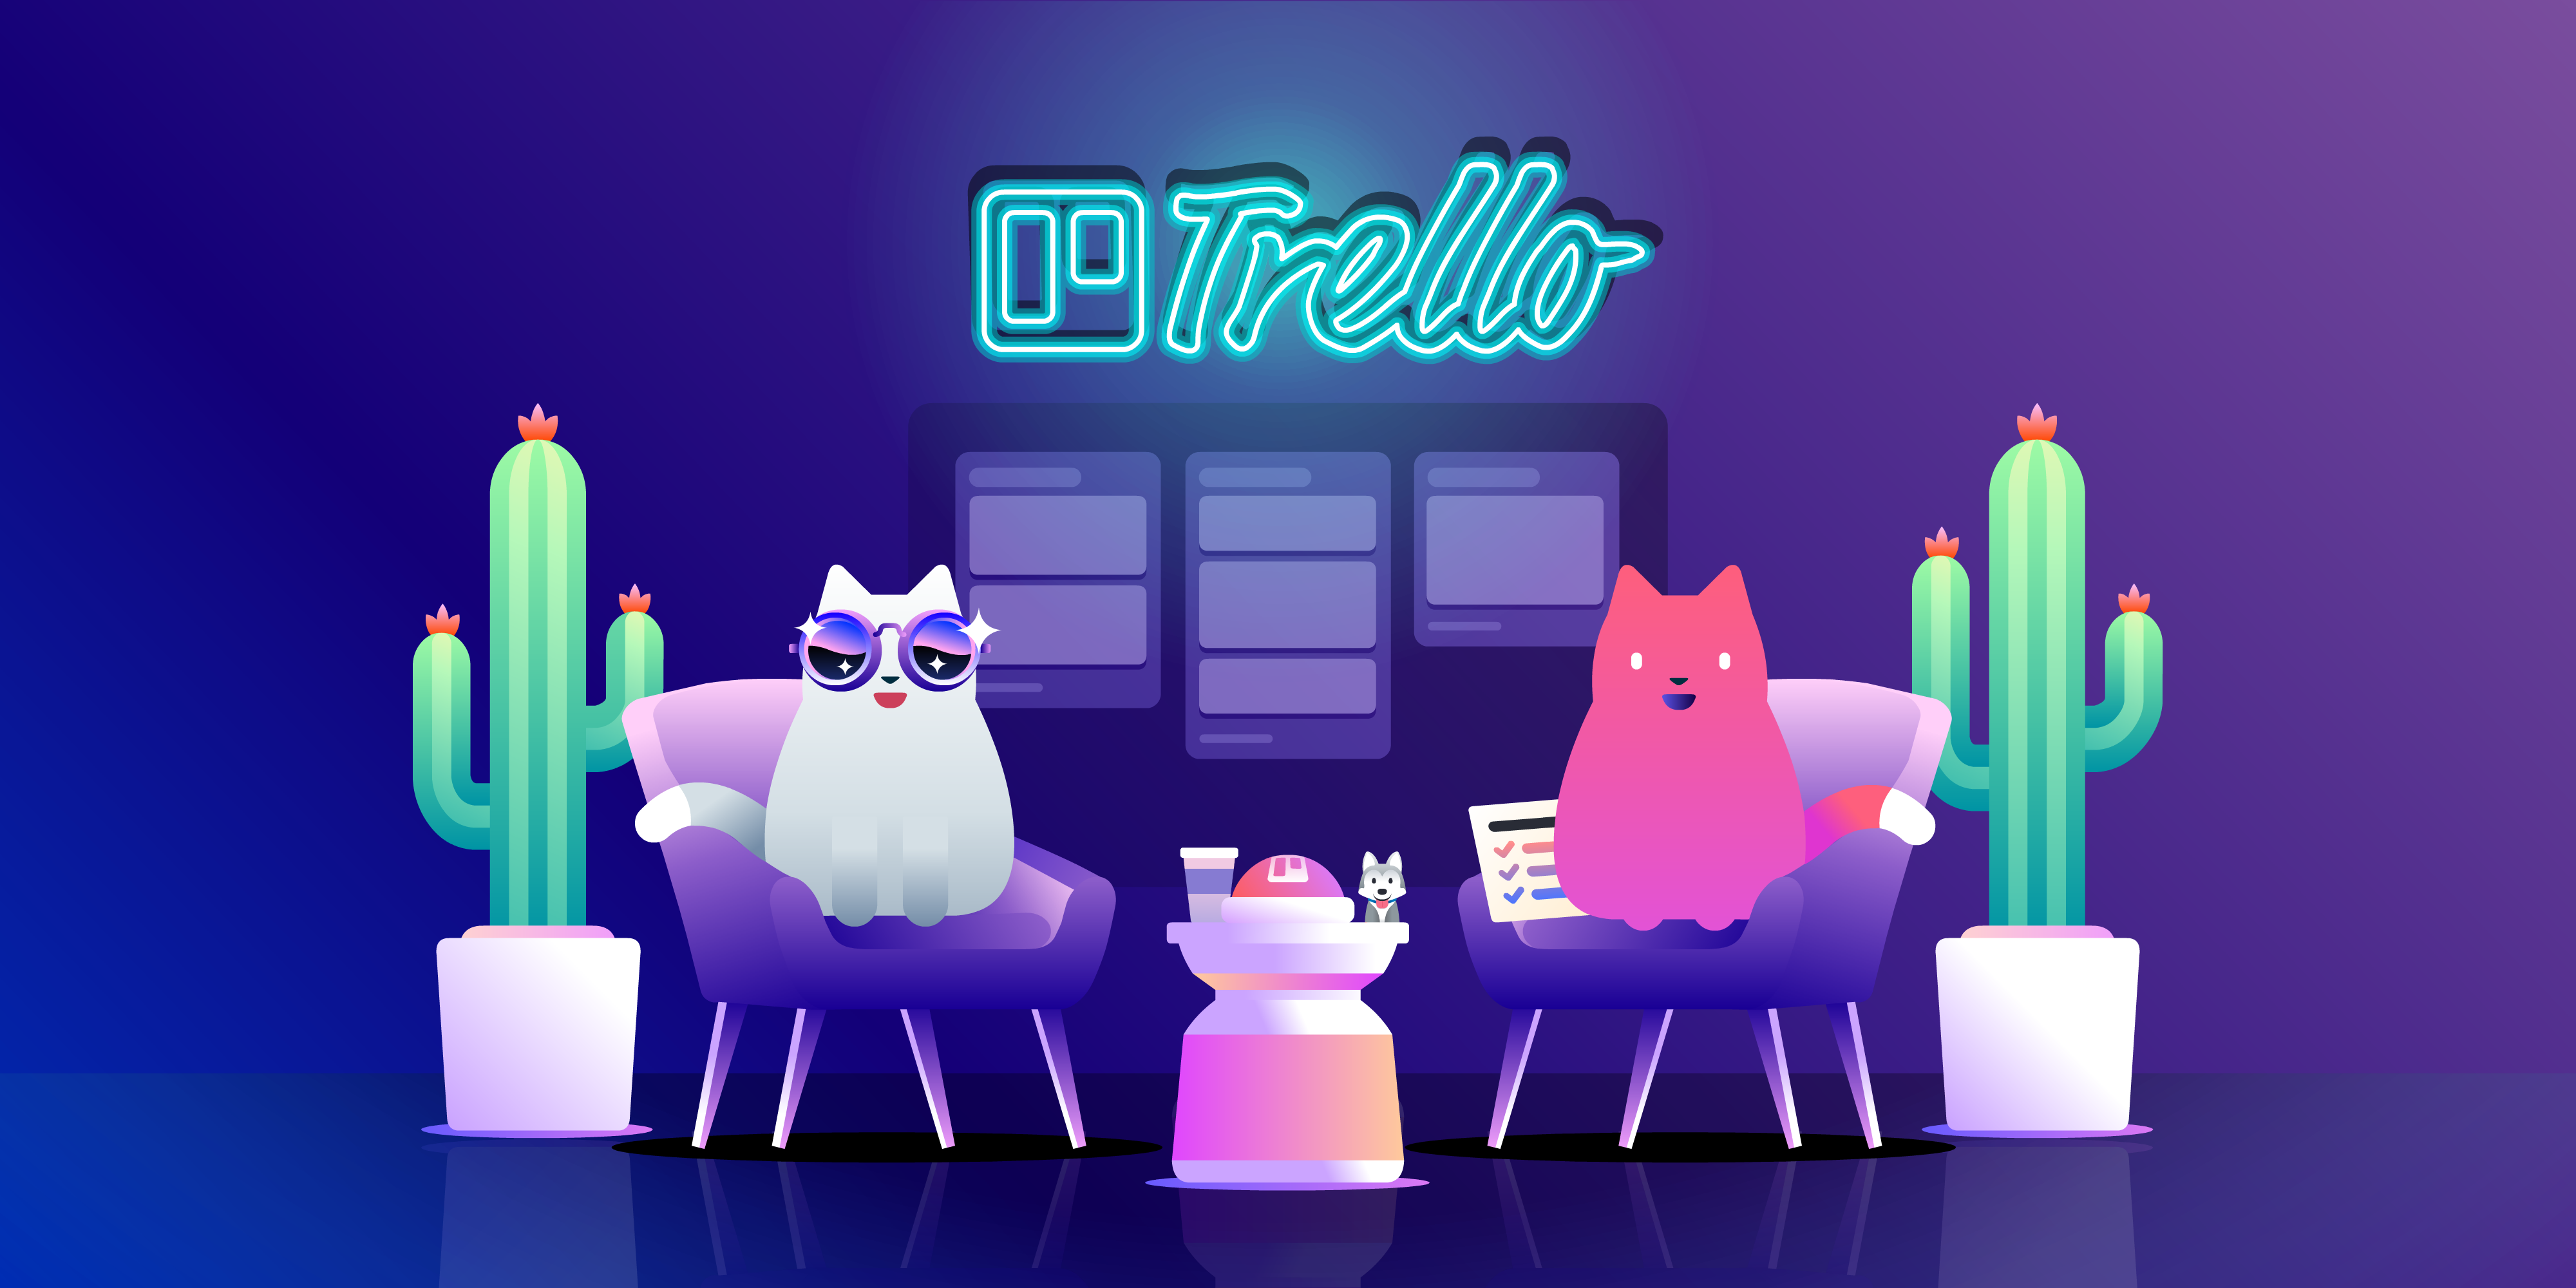 Verwendung von Trello bei One-on-One-Meetings